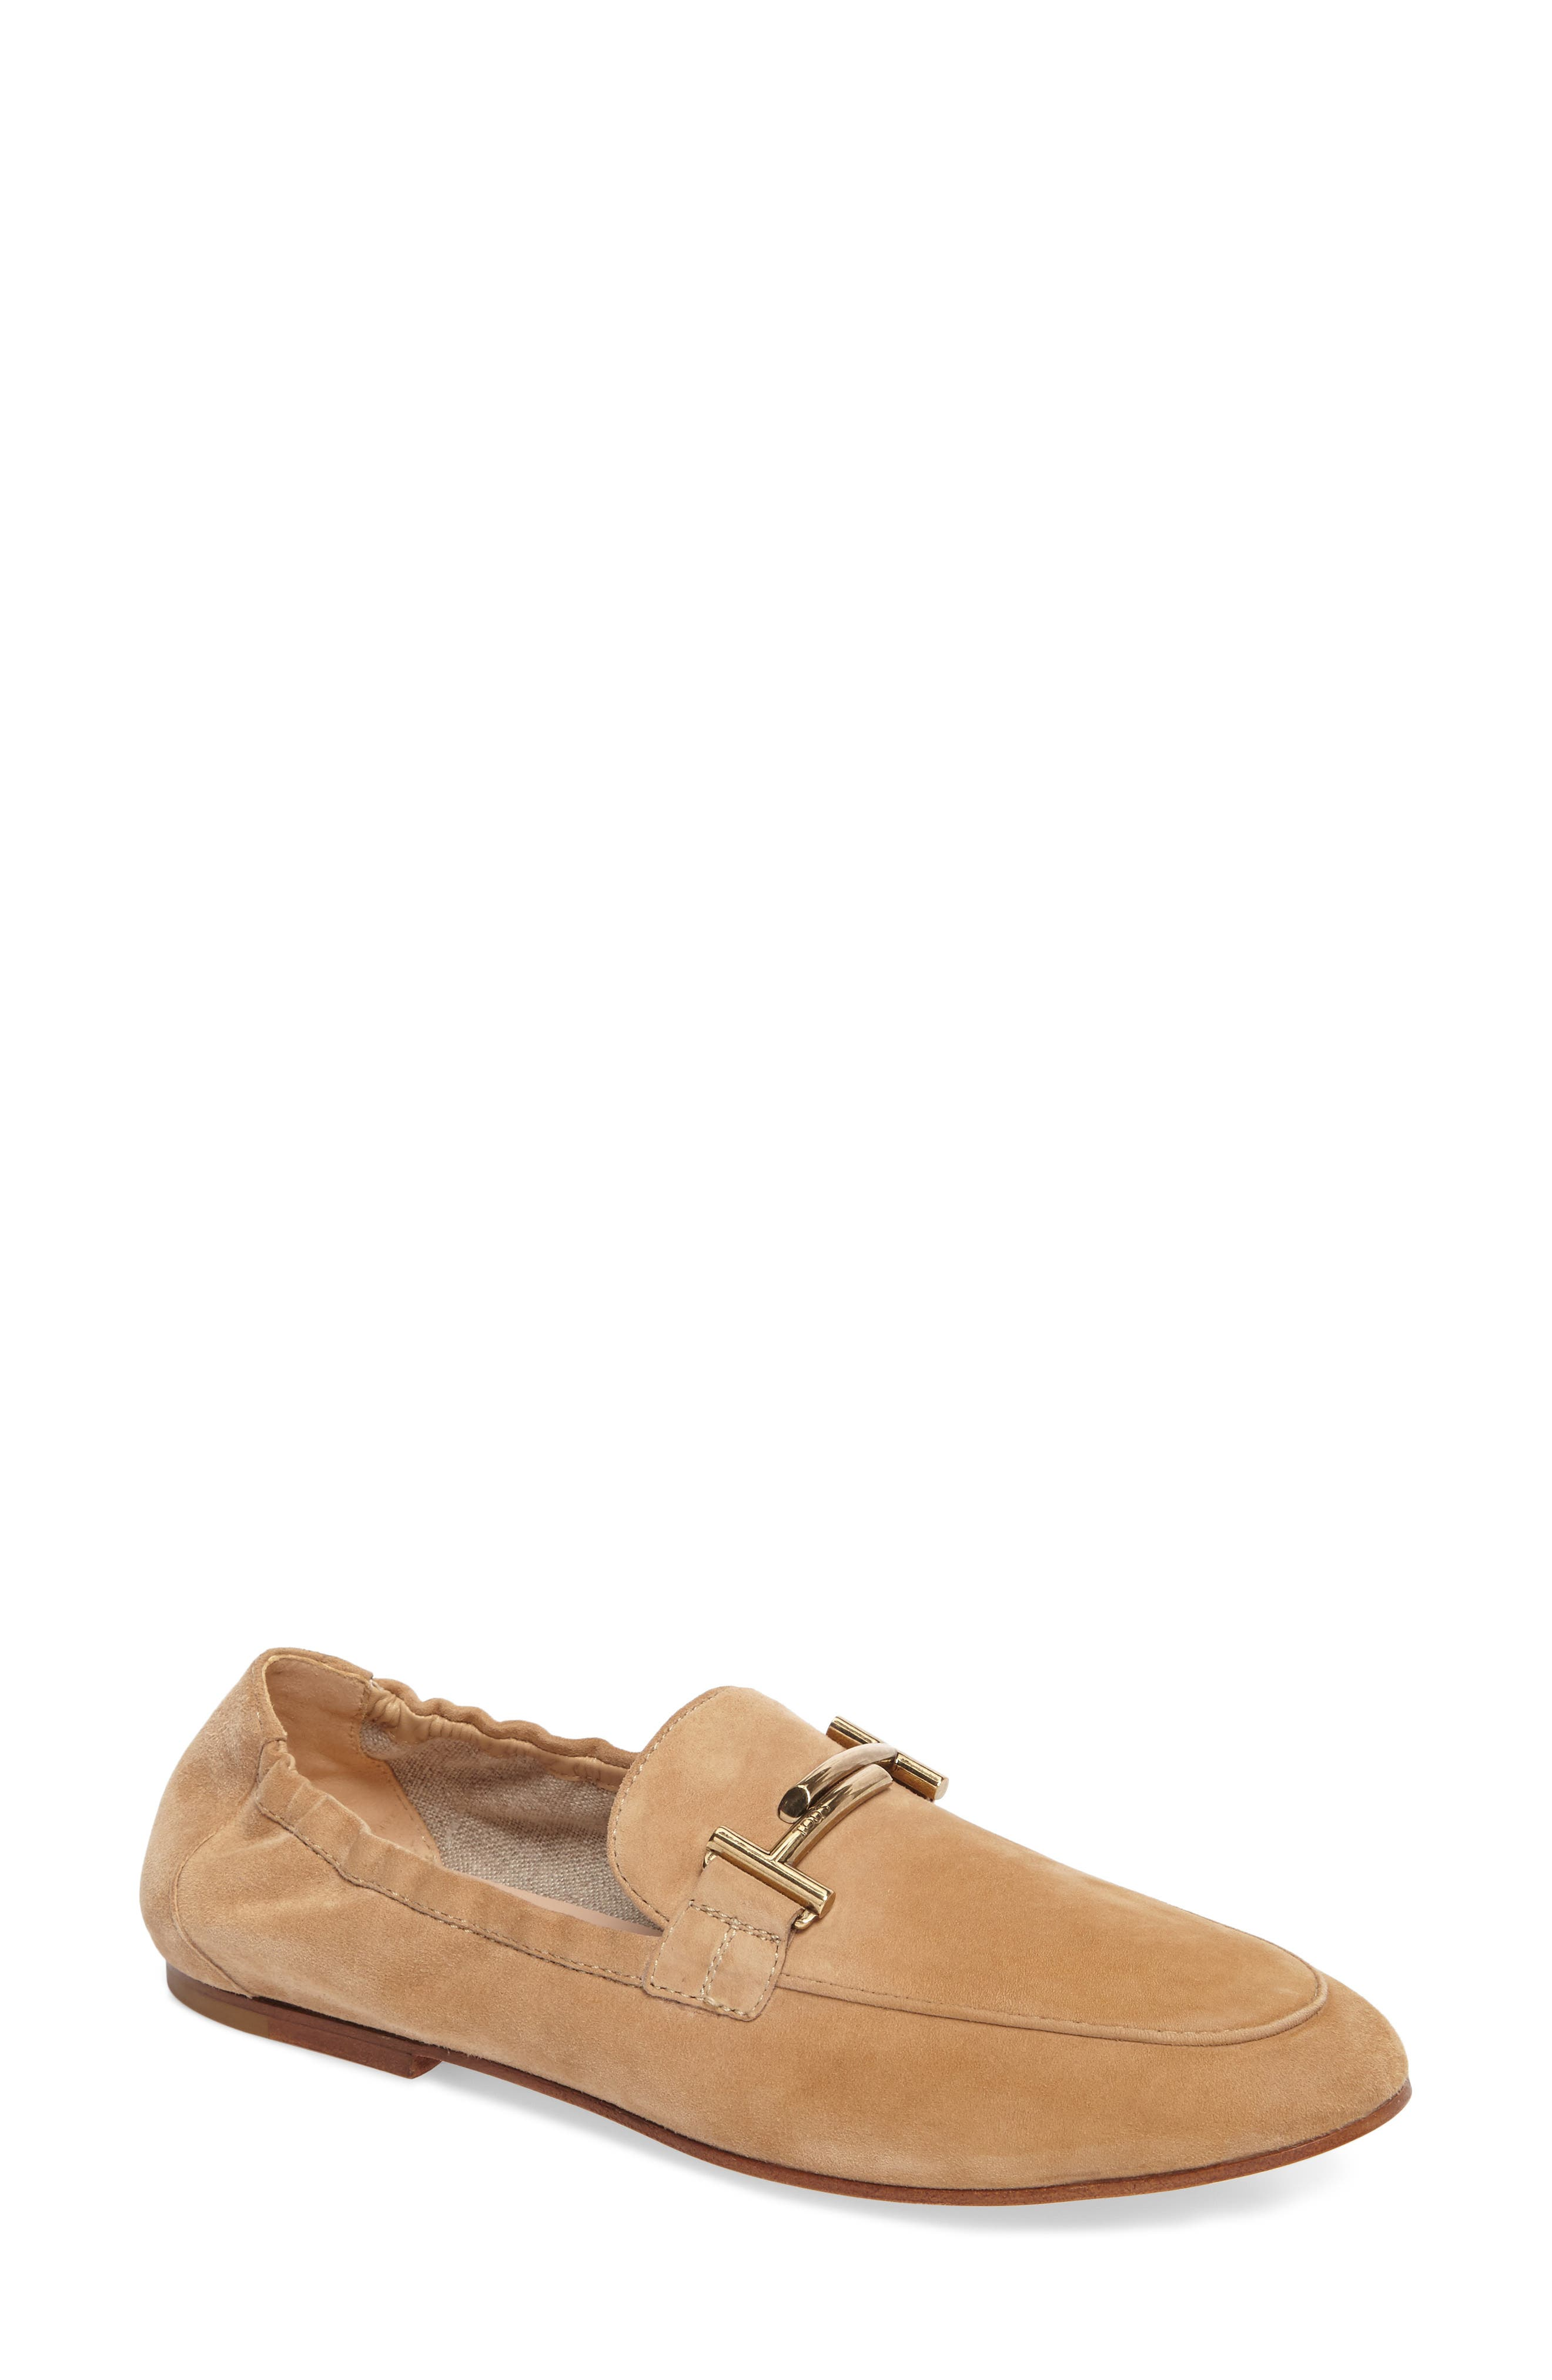 Alternate Image 1 Selected - Tod's Double T Scrunch Loafer (Women)